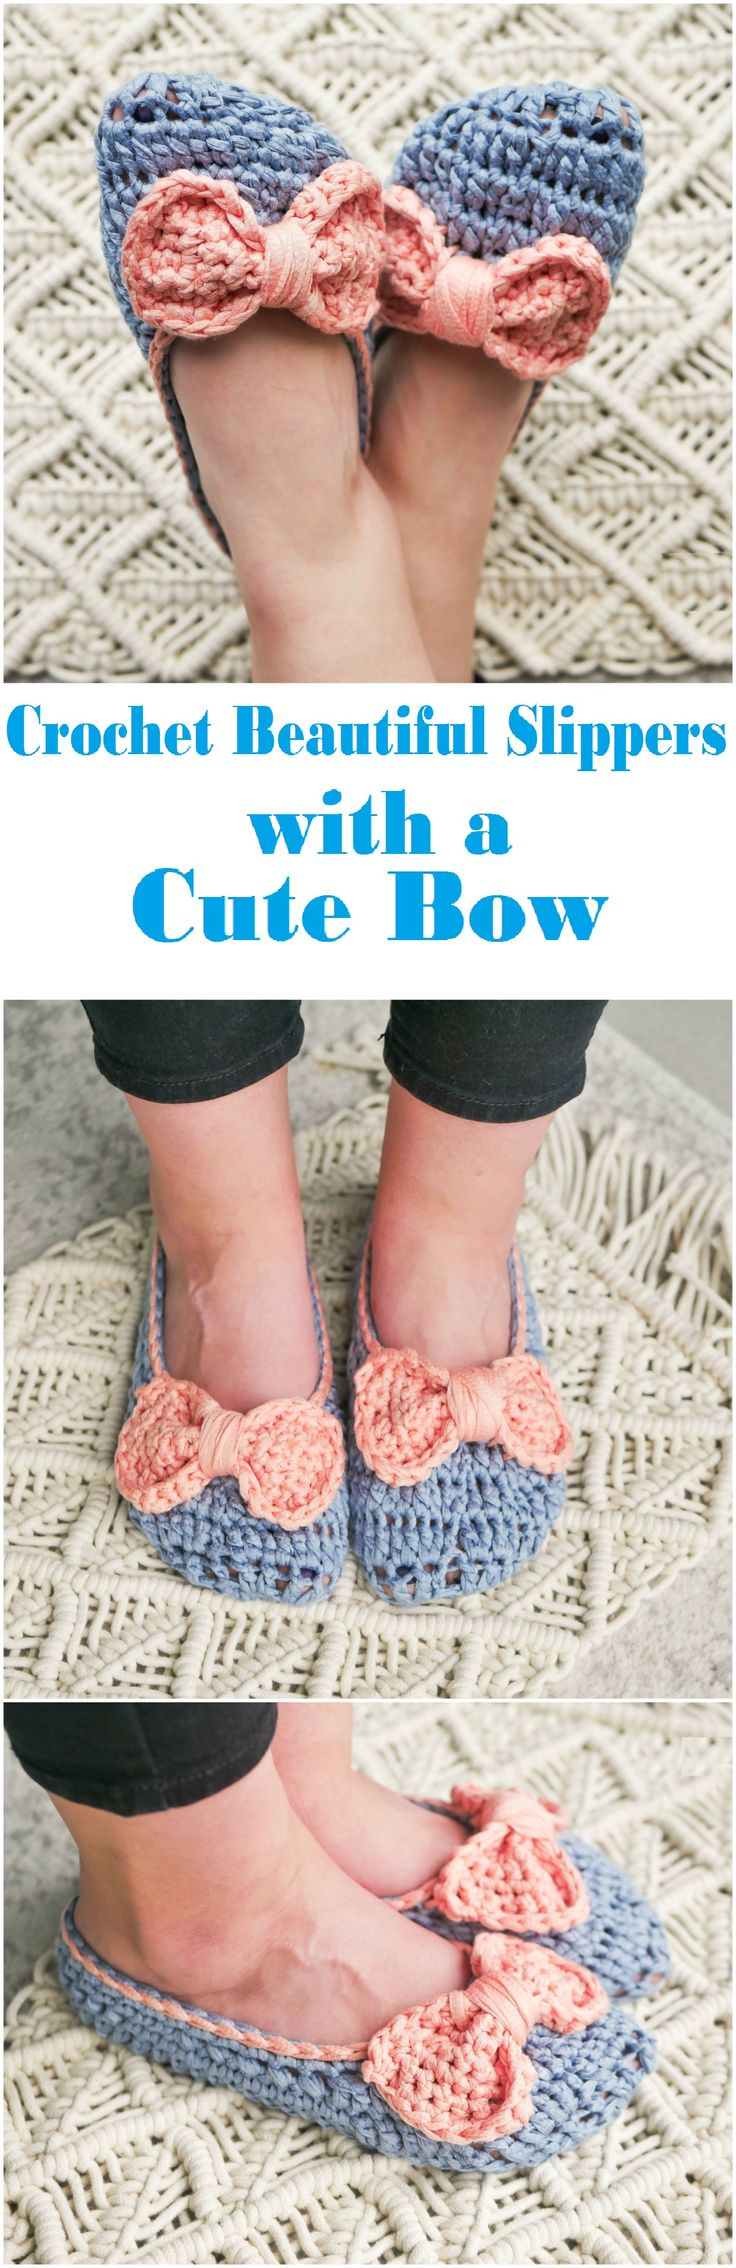 Best 447 clothes -2 Crochet or Knitted ideas on Pinterest | Kleidung ...